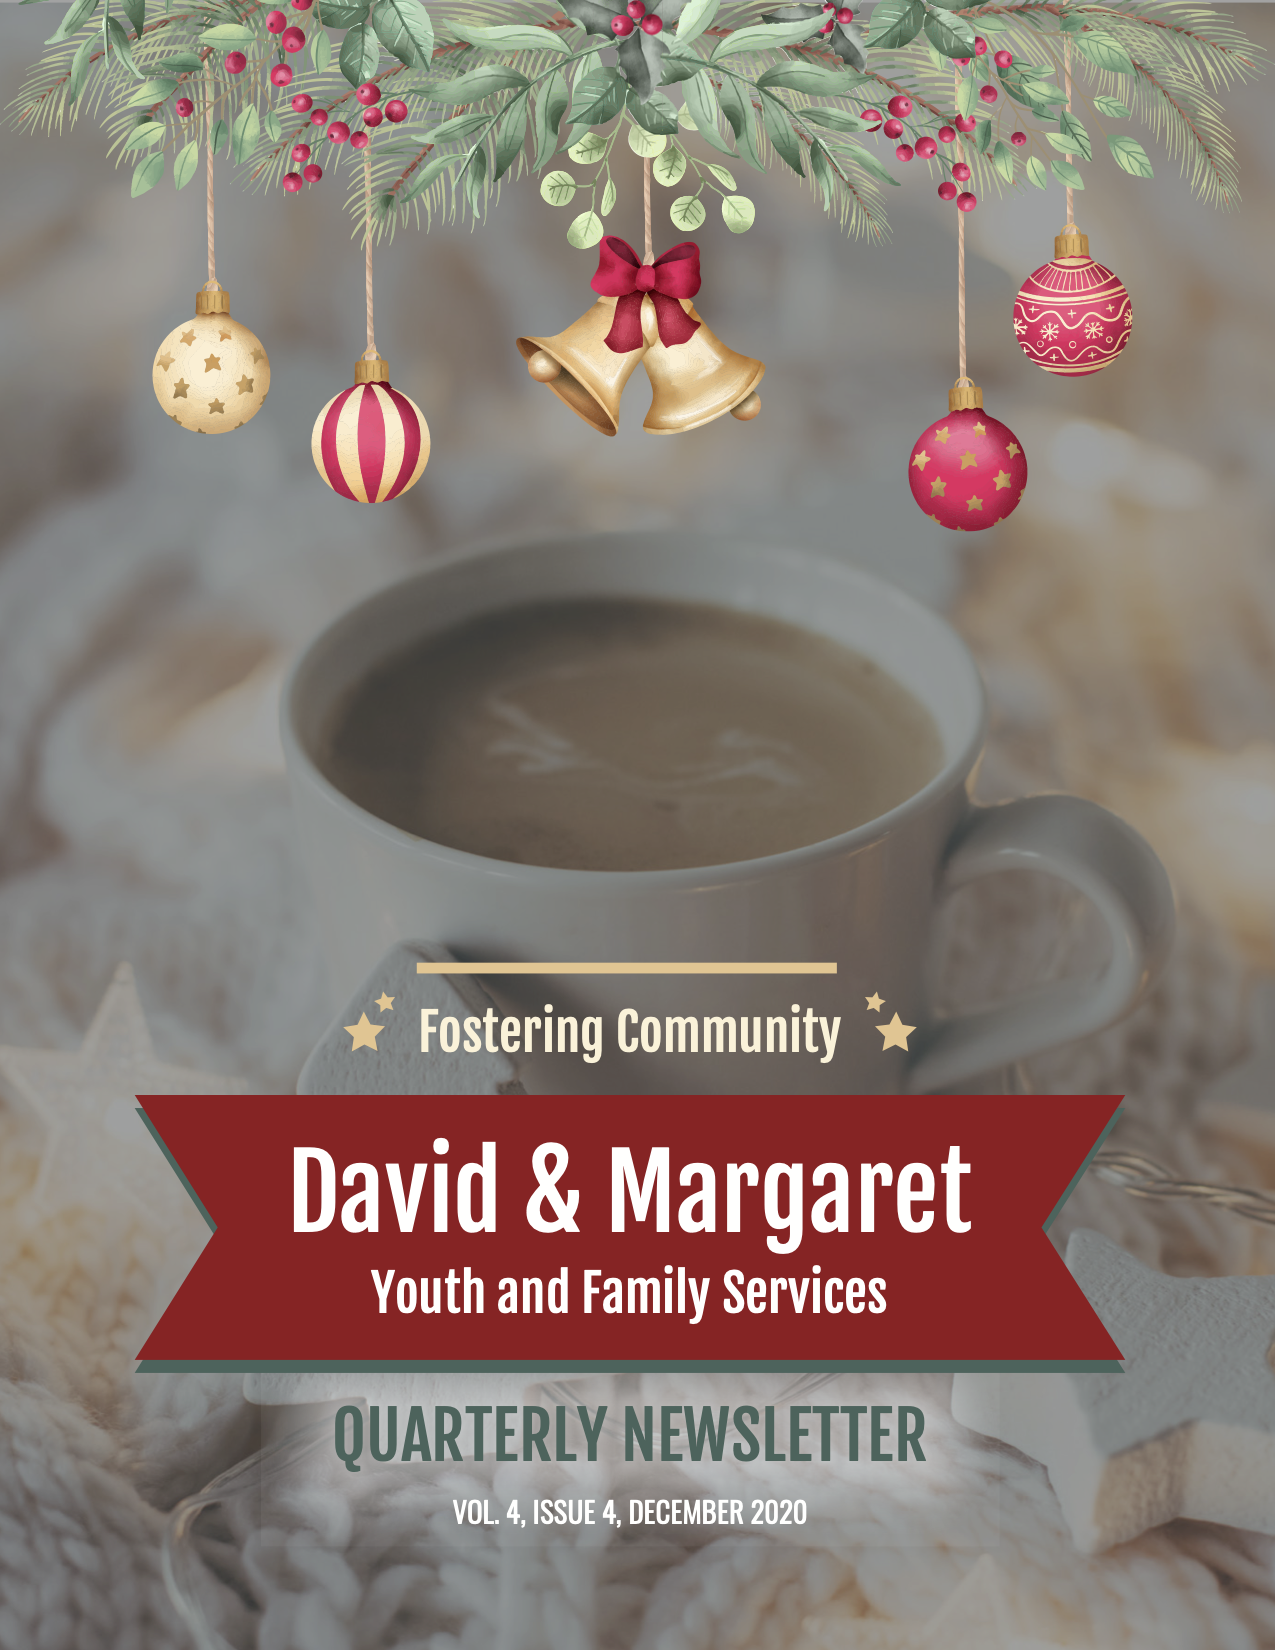 David & Margaret Quarterly Newsletter Vol. 2 Issue 4